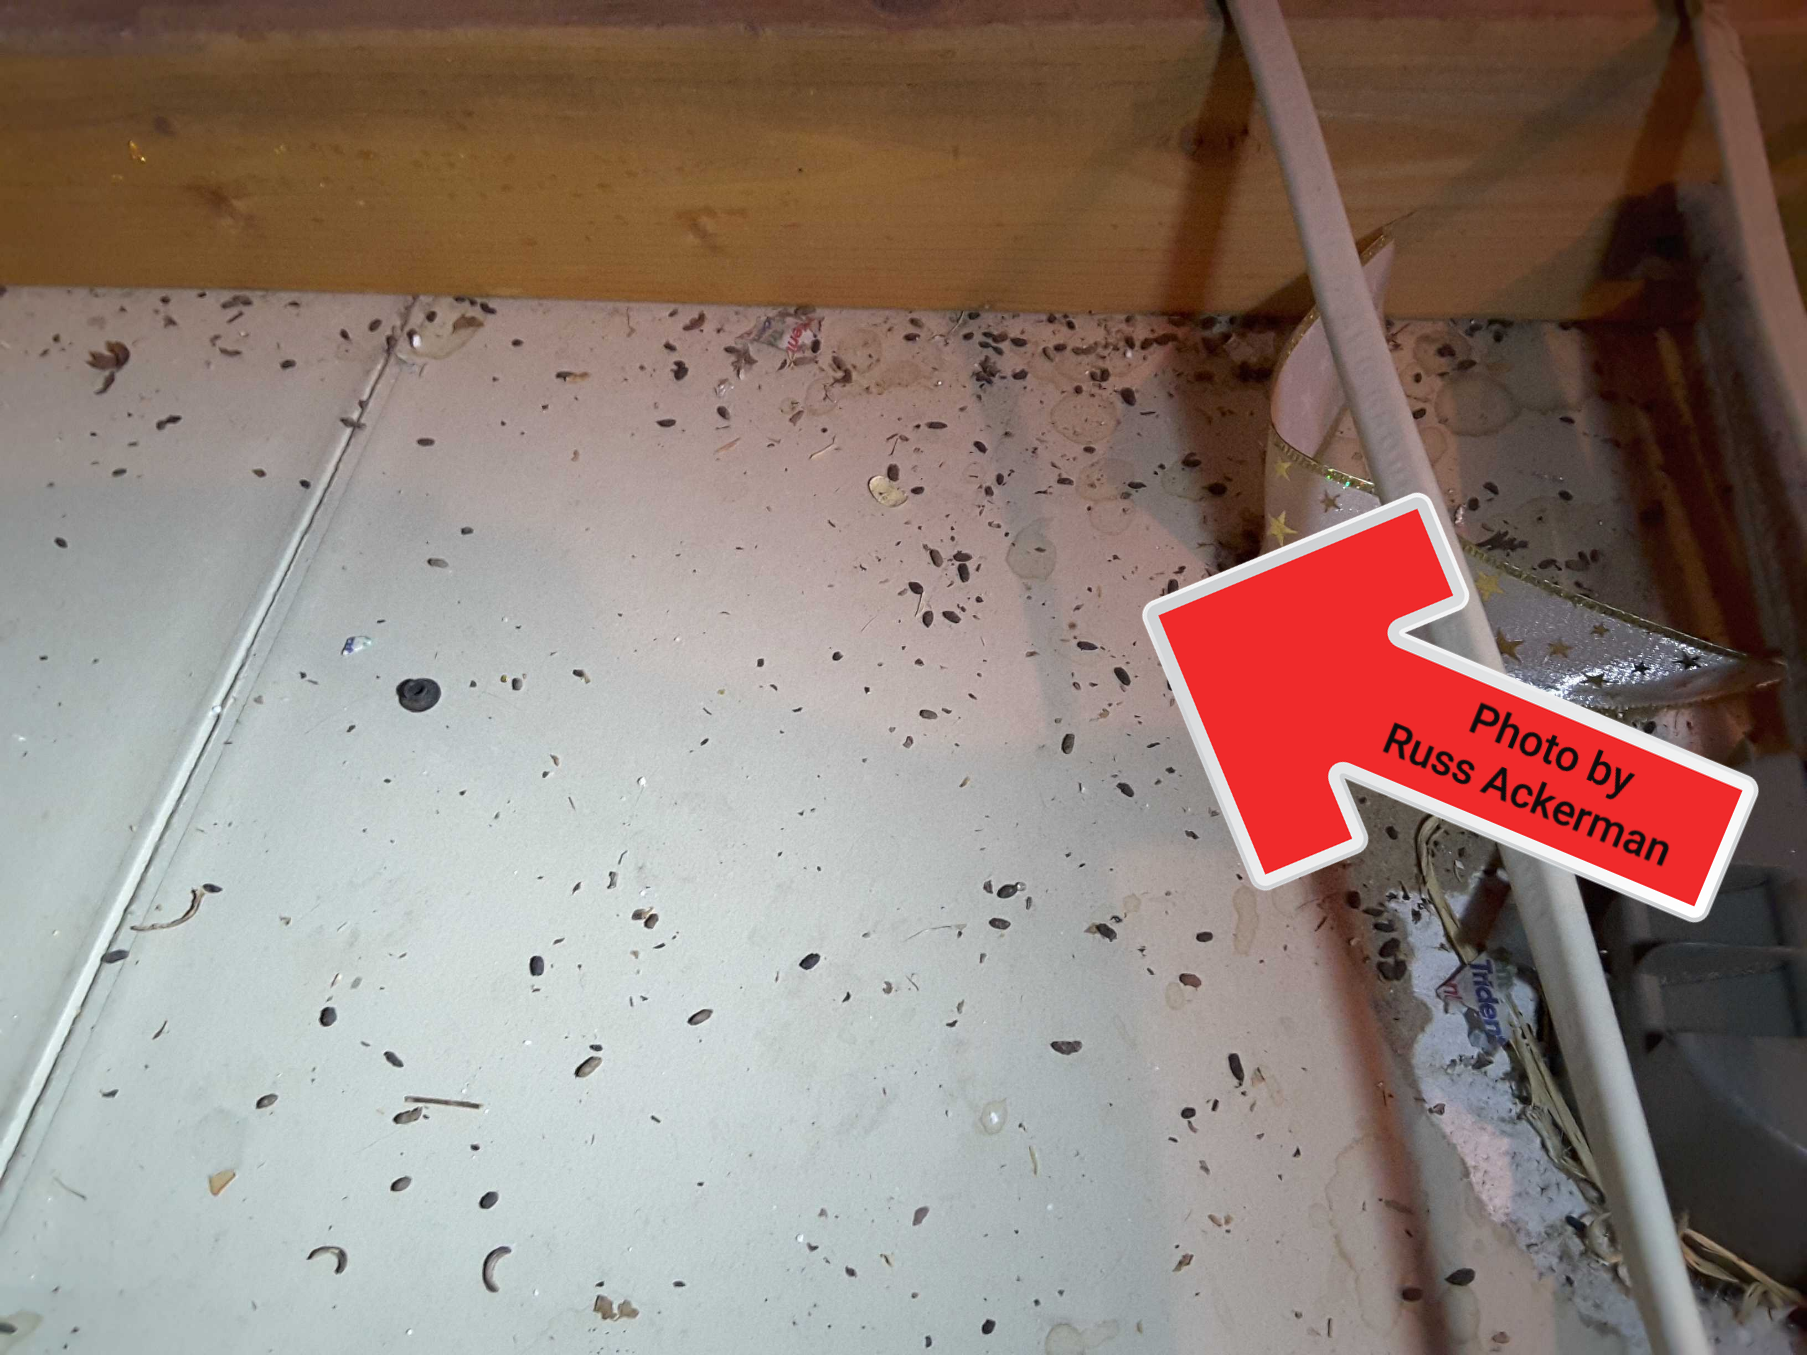 This home had heavy rodent activity in the attic. Once they move in and get comfy, it'll take even more work to eradicate these vermin.